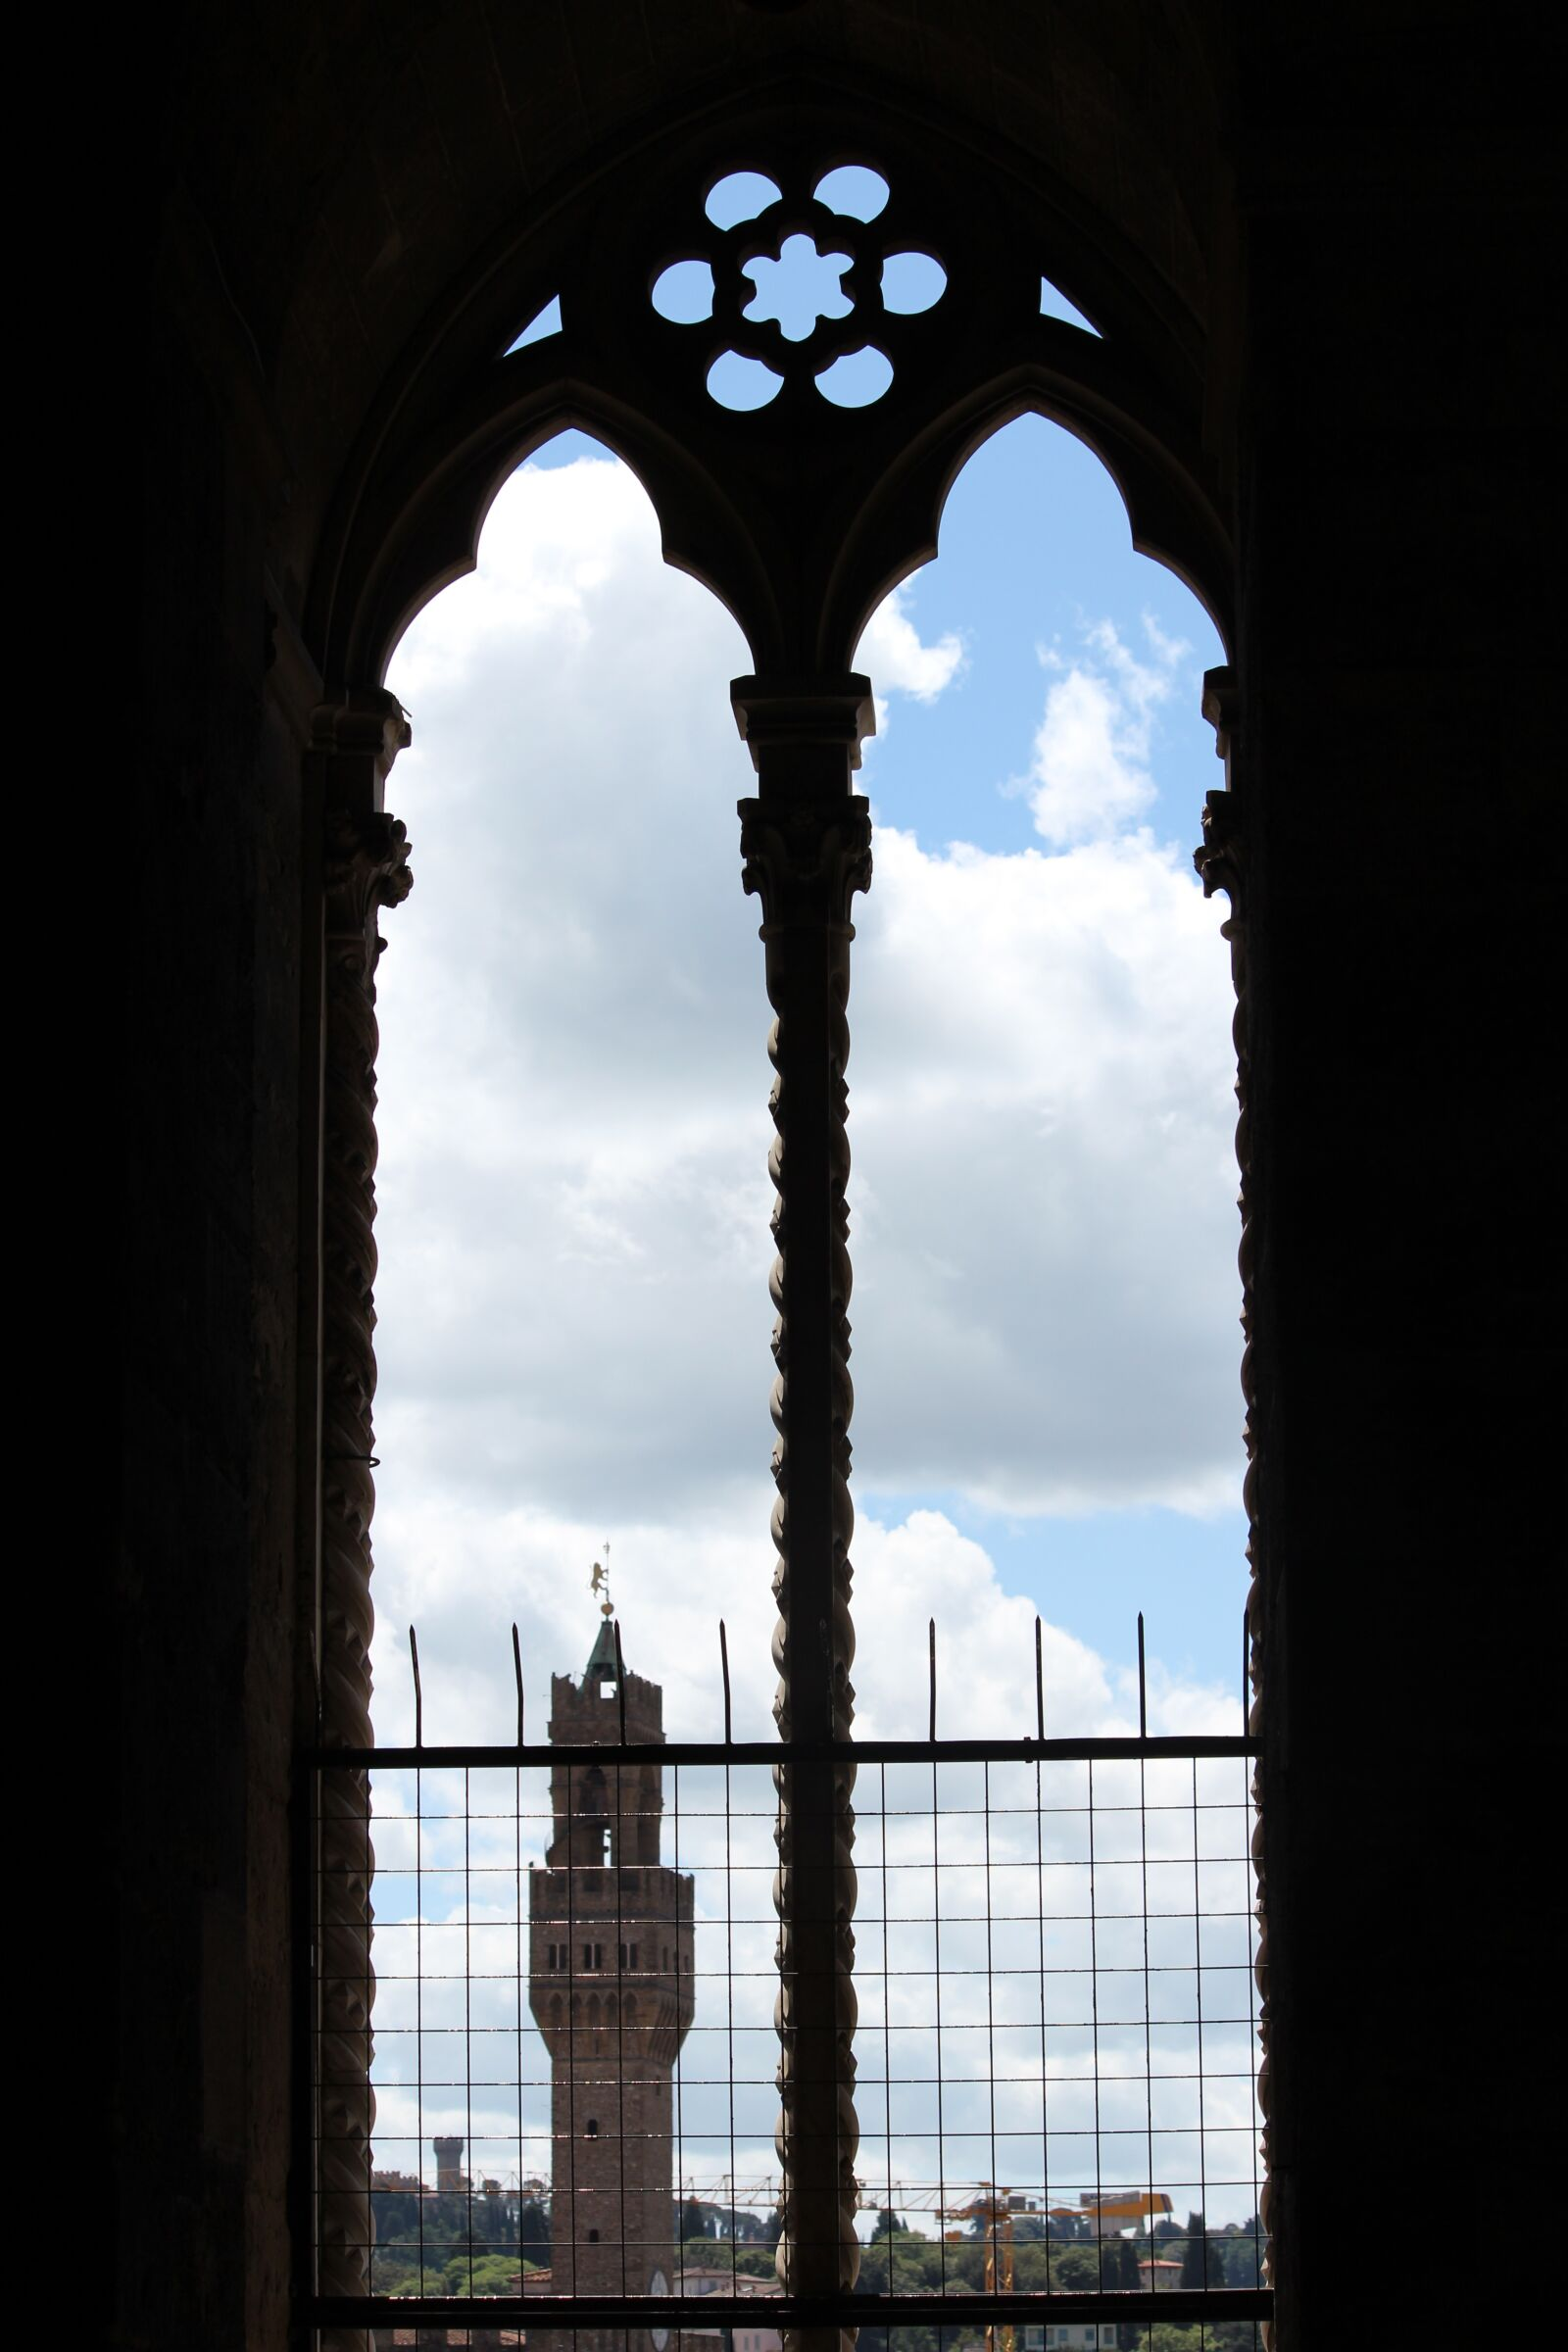 """Canon EOS 600D (Rebel EOS T3i / EOS Kiss X5) sample photo. """"Florence, architecture, church"""" photography"""